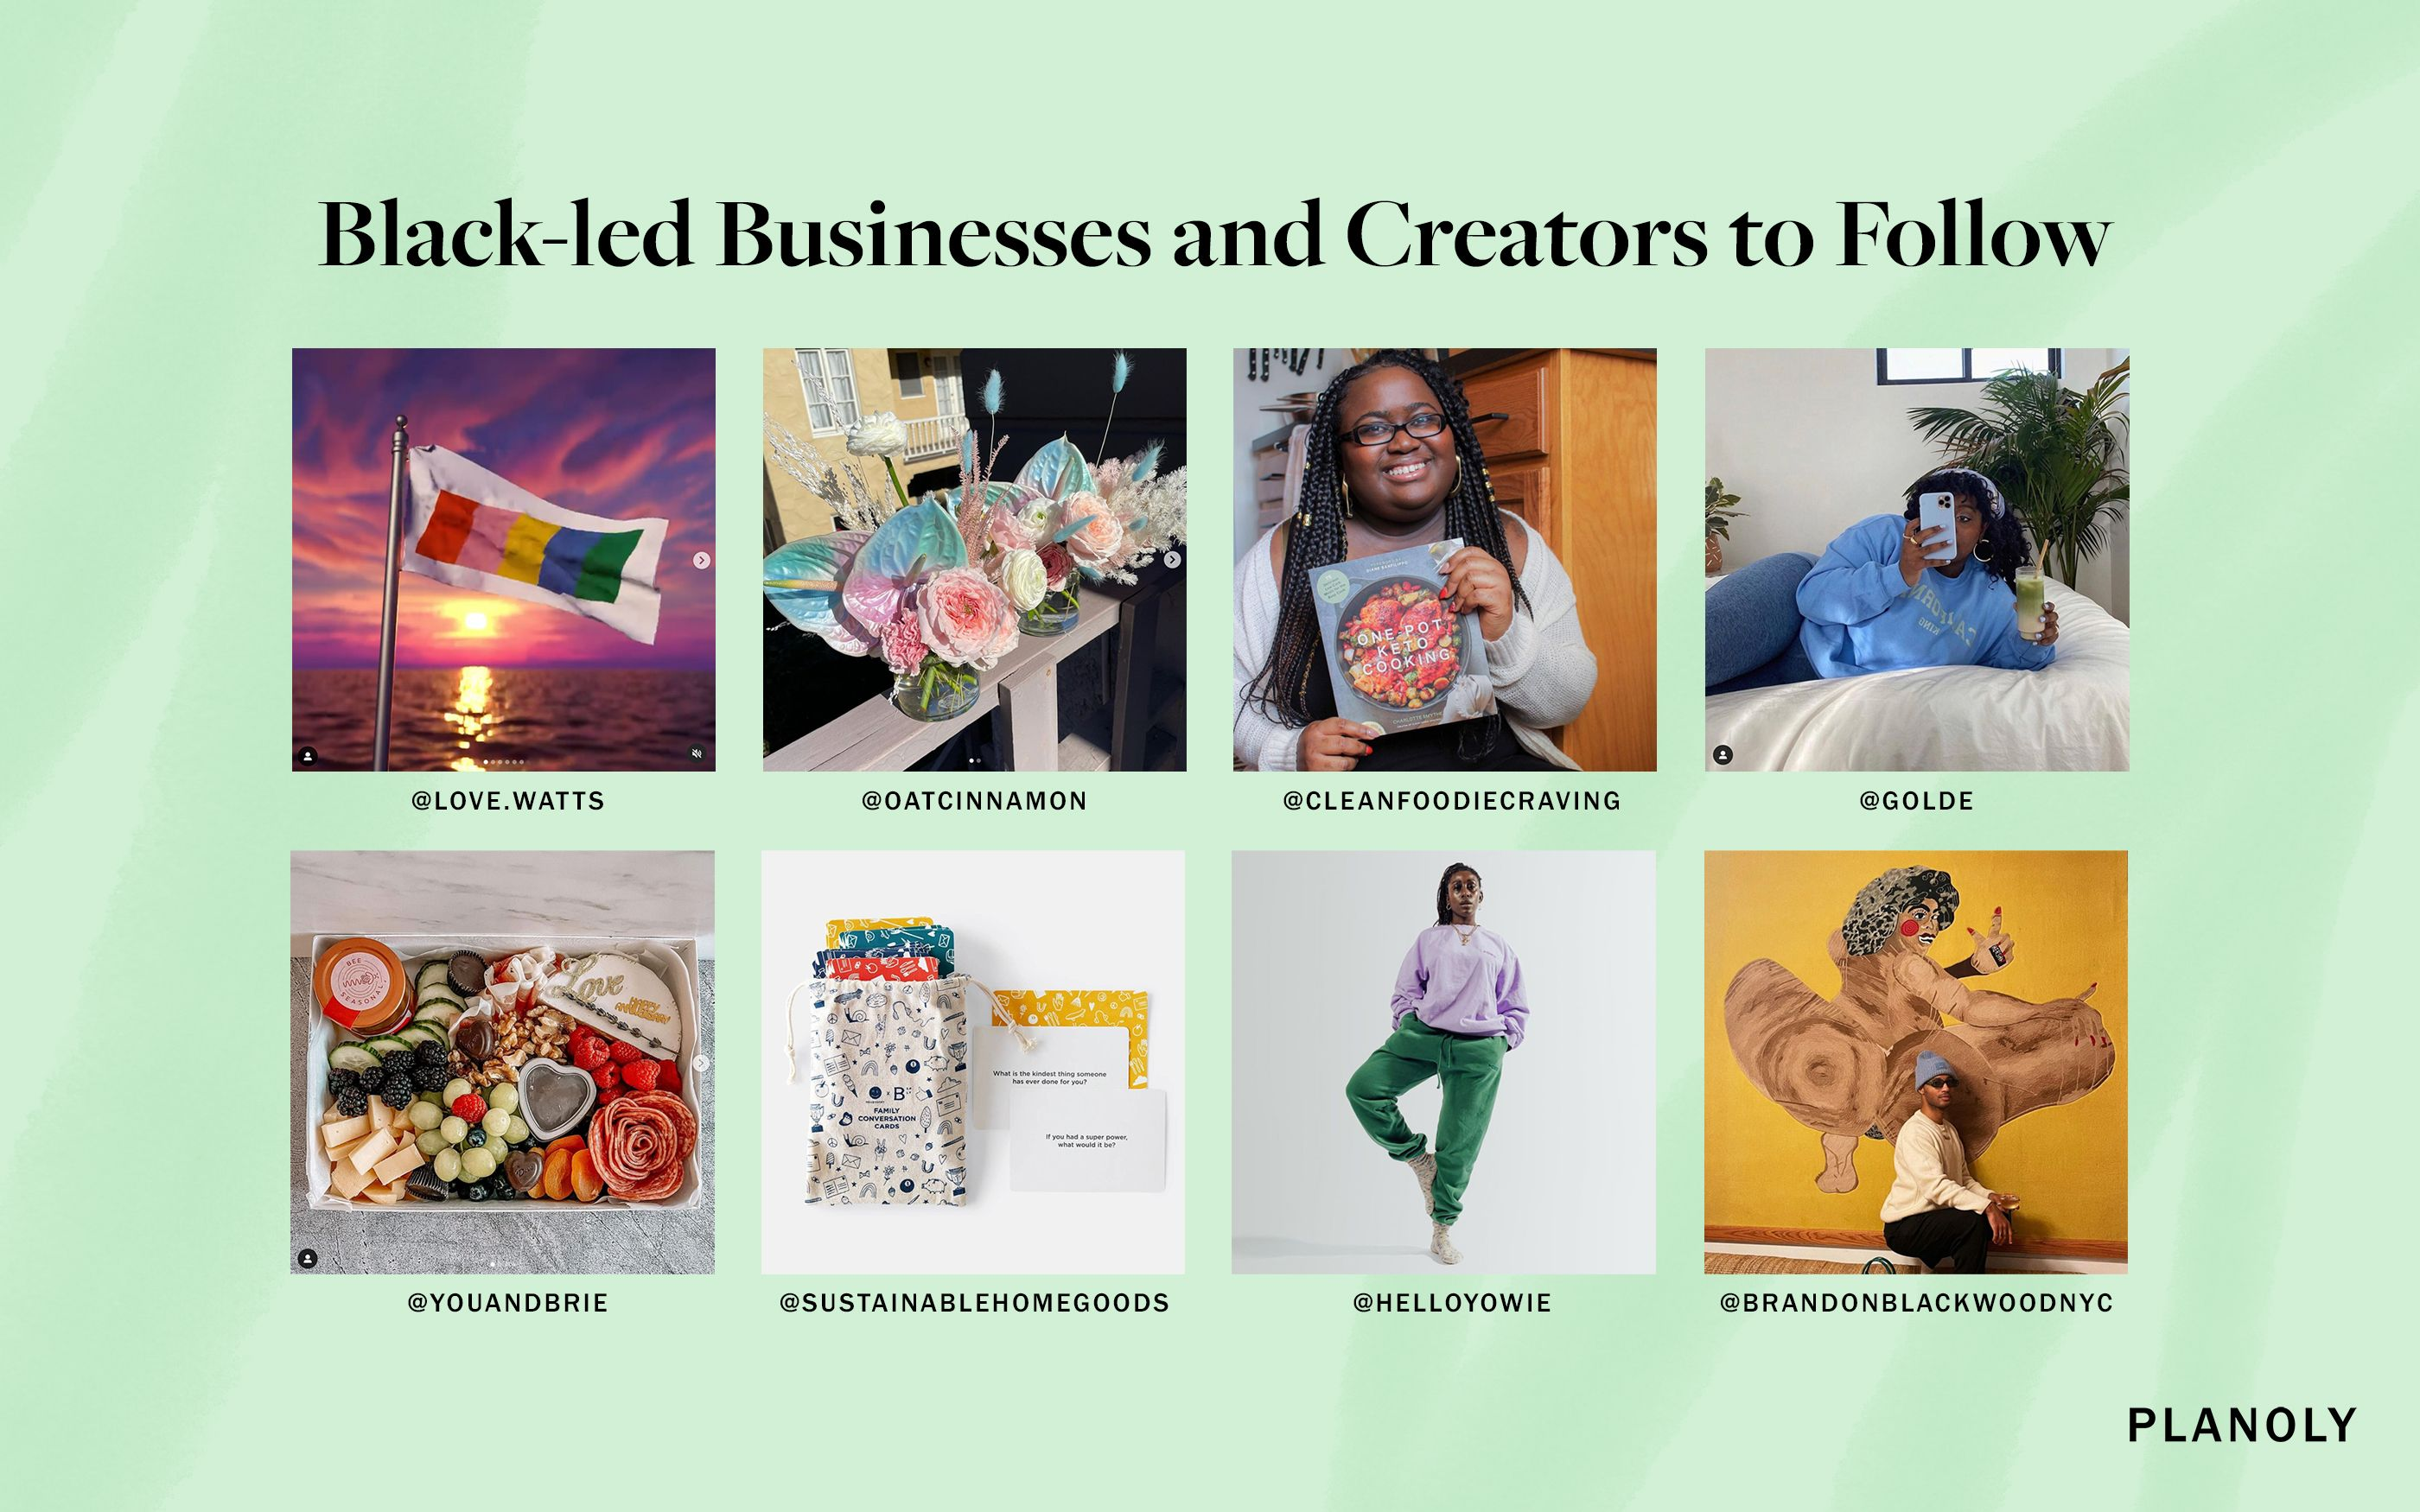 PLANOLY - Blog Post - How to Support Black Businesses - Image 4